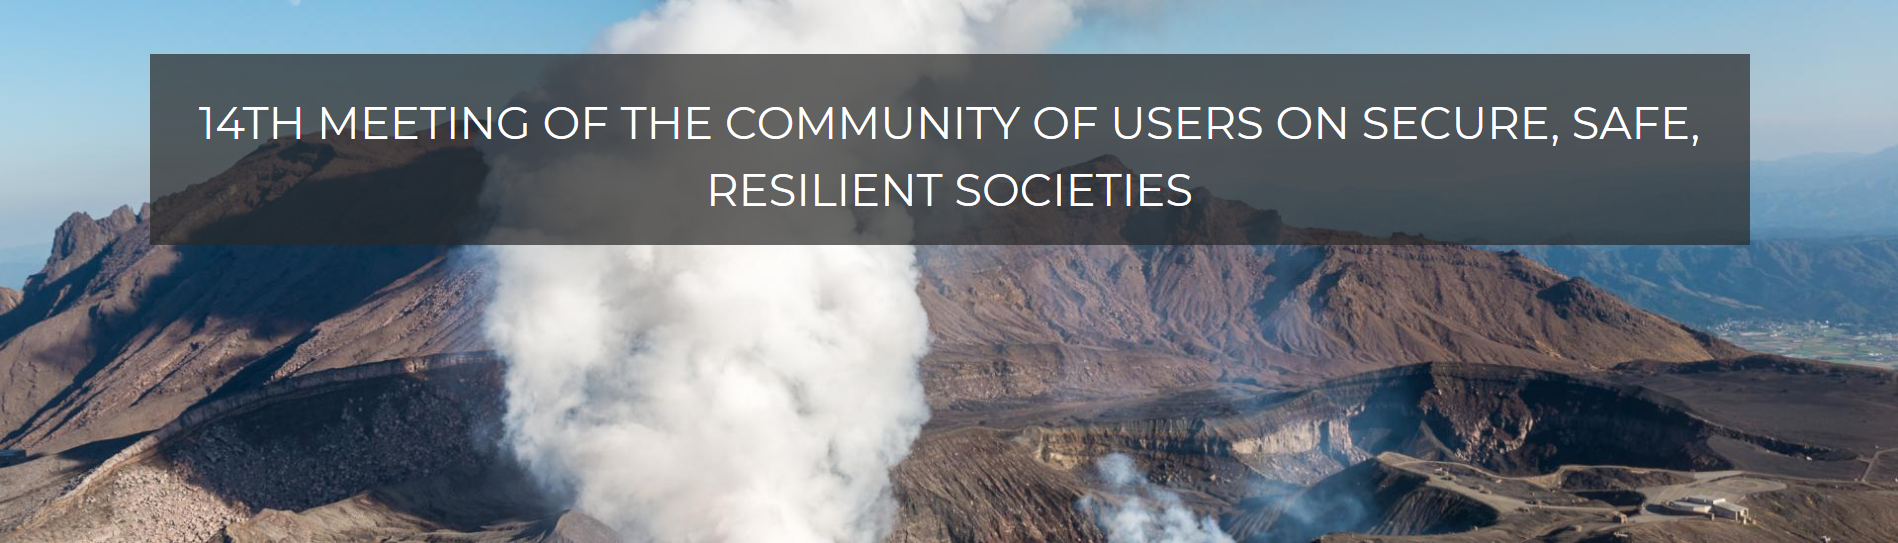 14th Meeting of the Community of Users on Secure, Safe, Resilient Societies